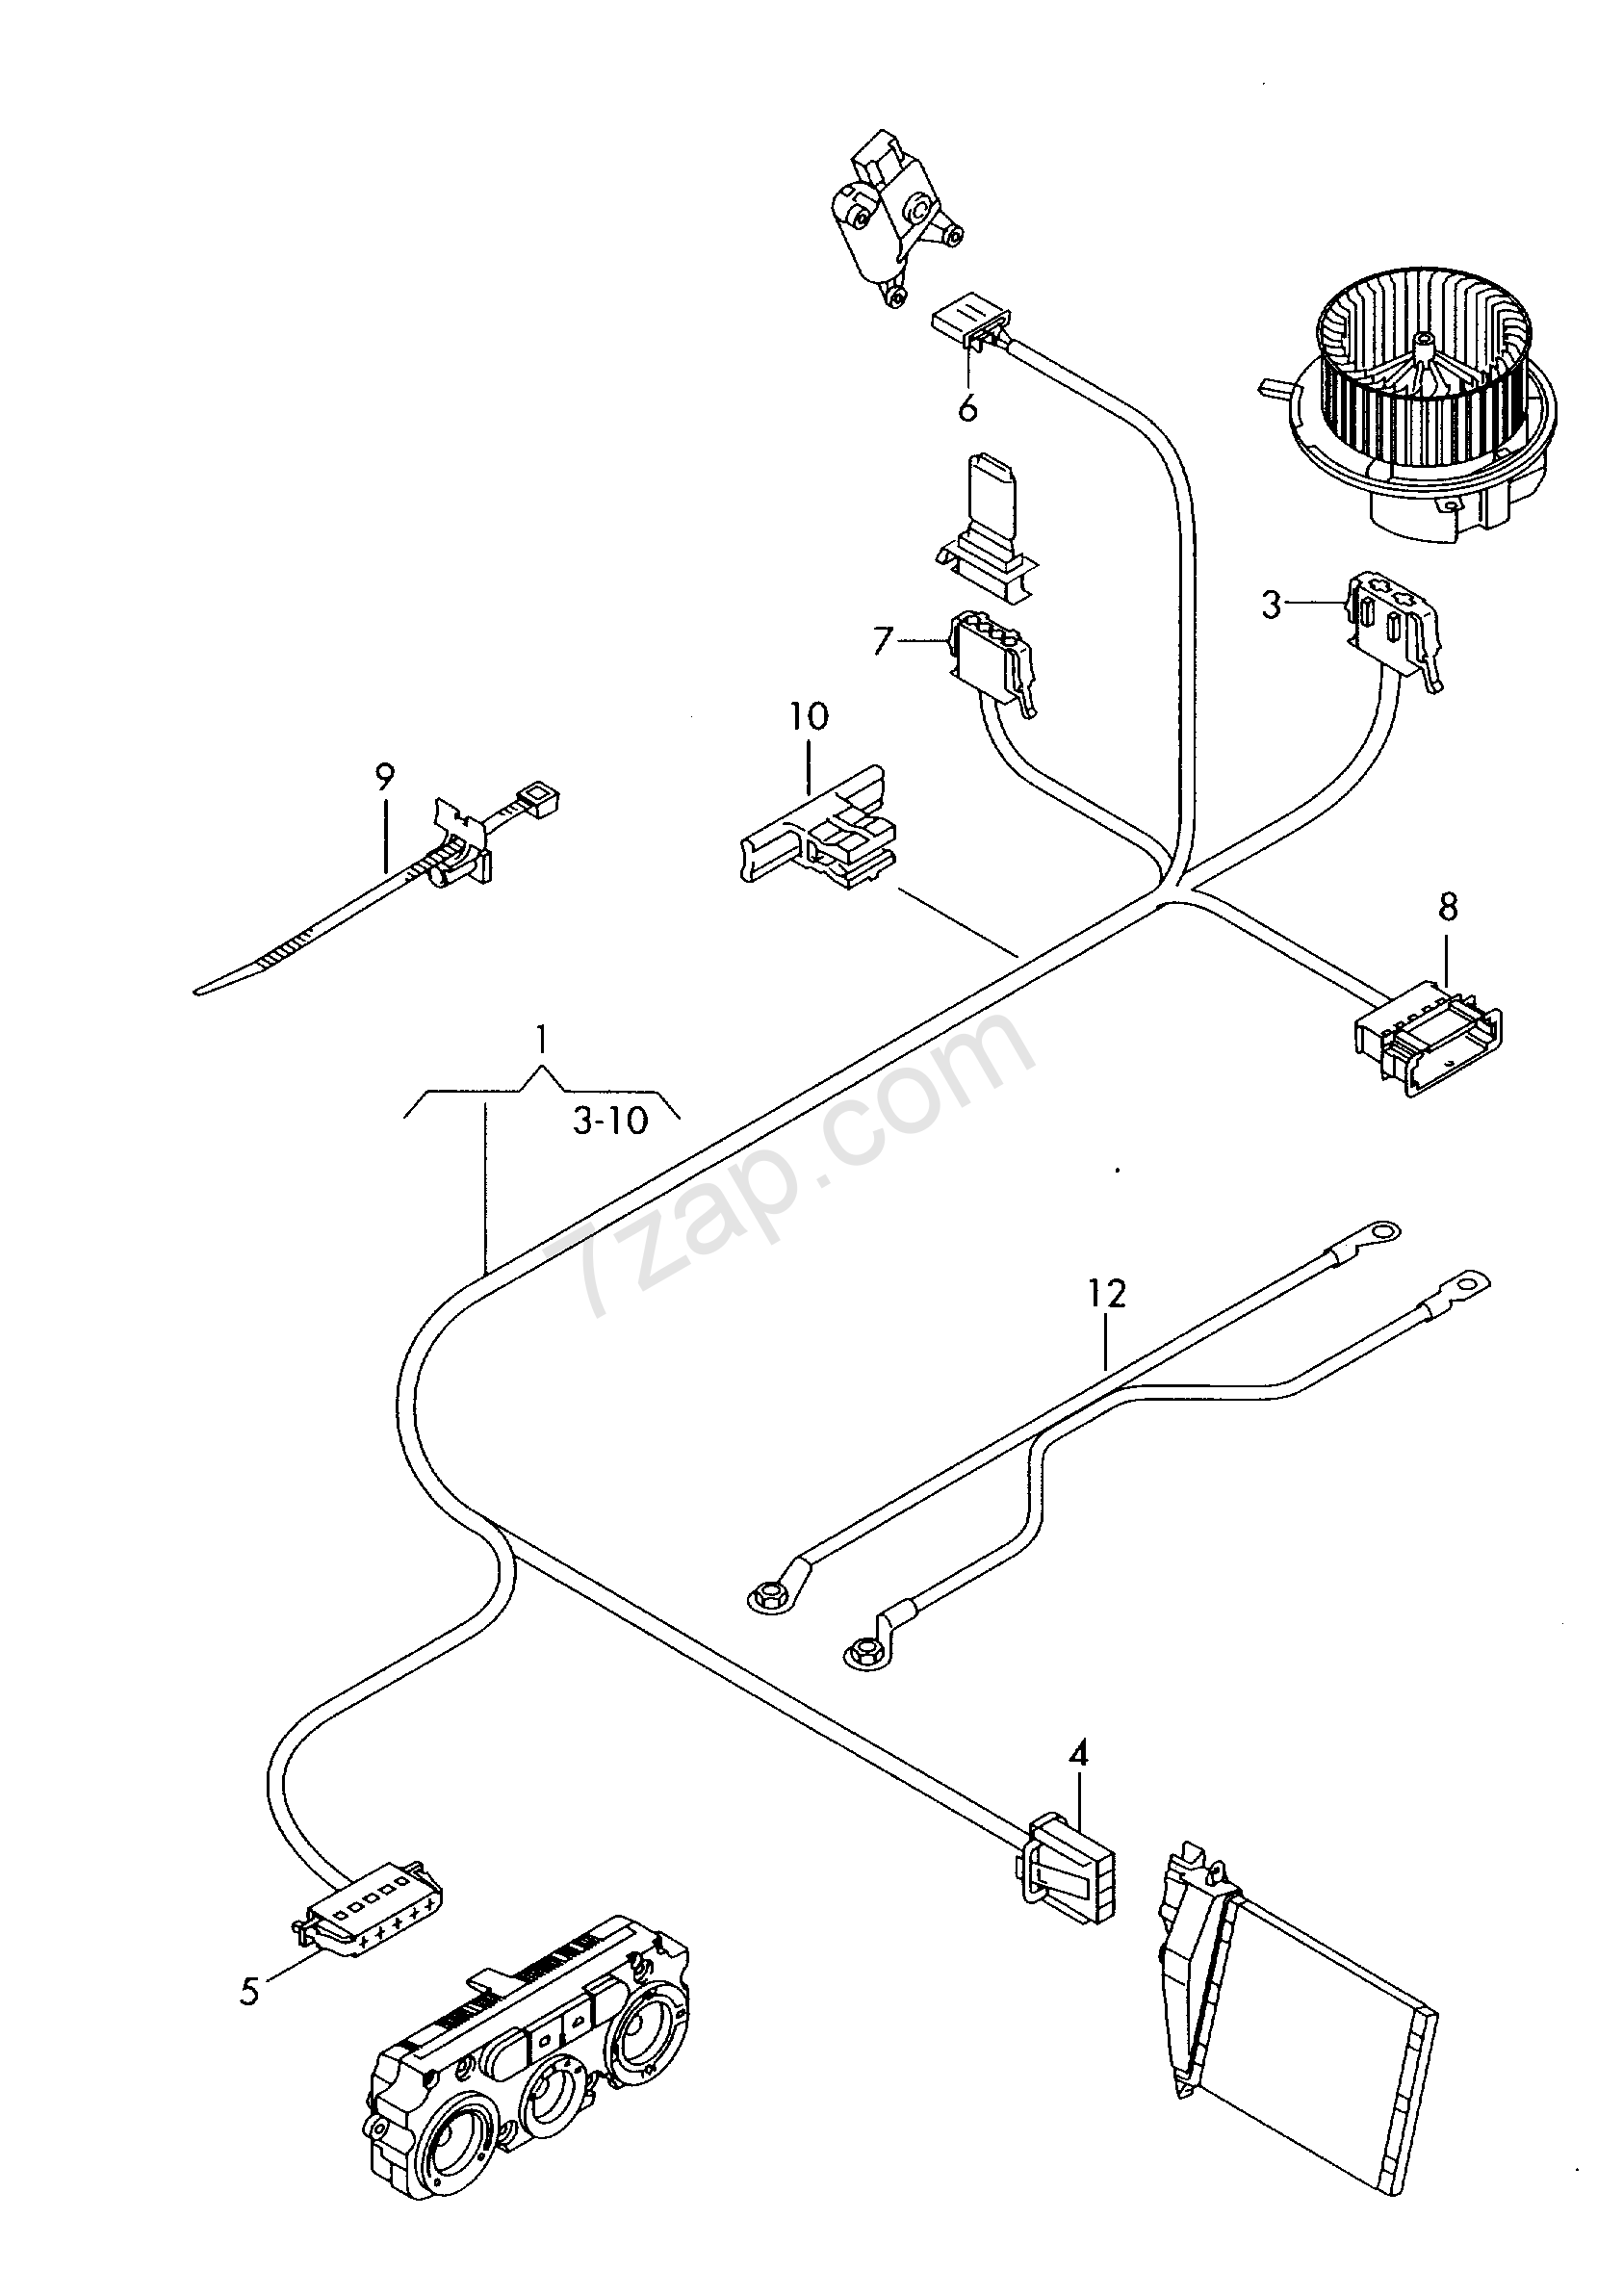 wiring harness for additional heater unit Caddy (CA) 2012